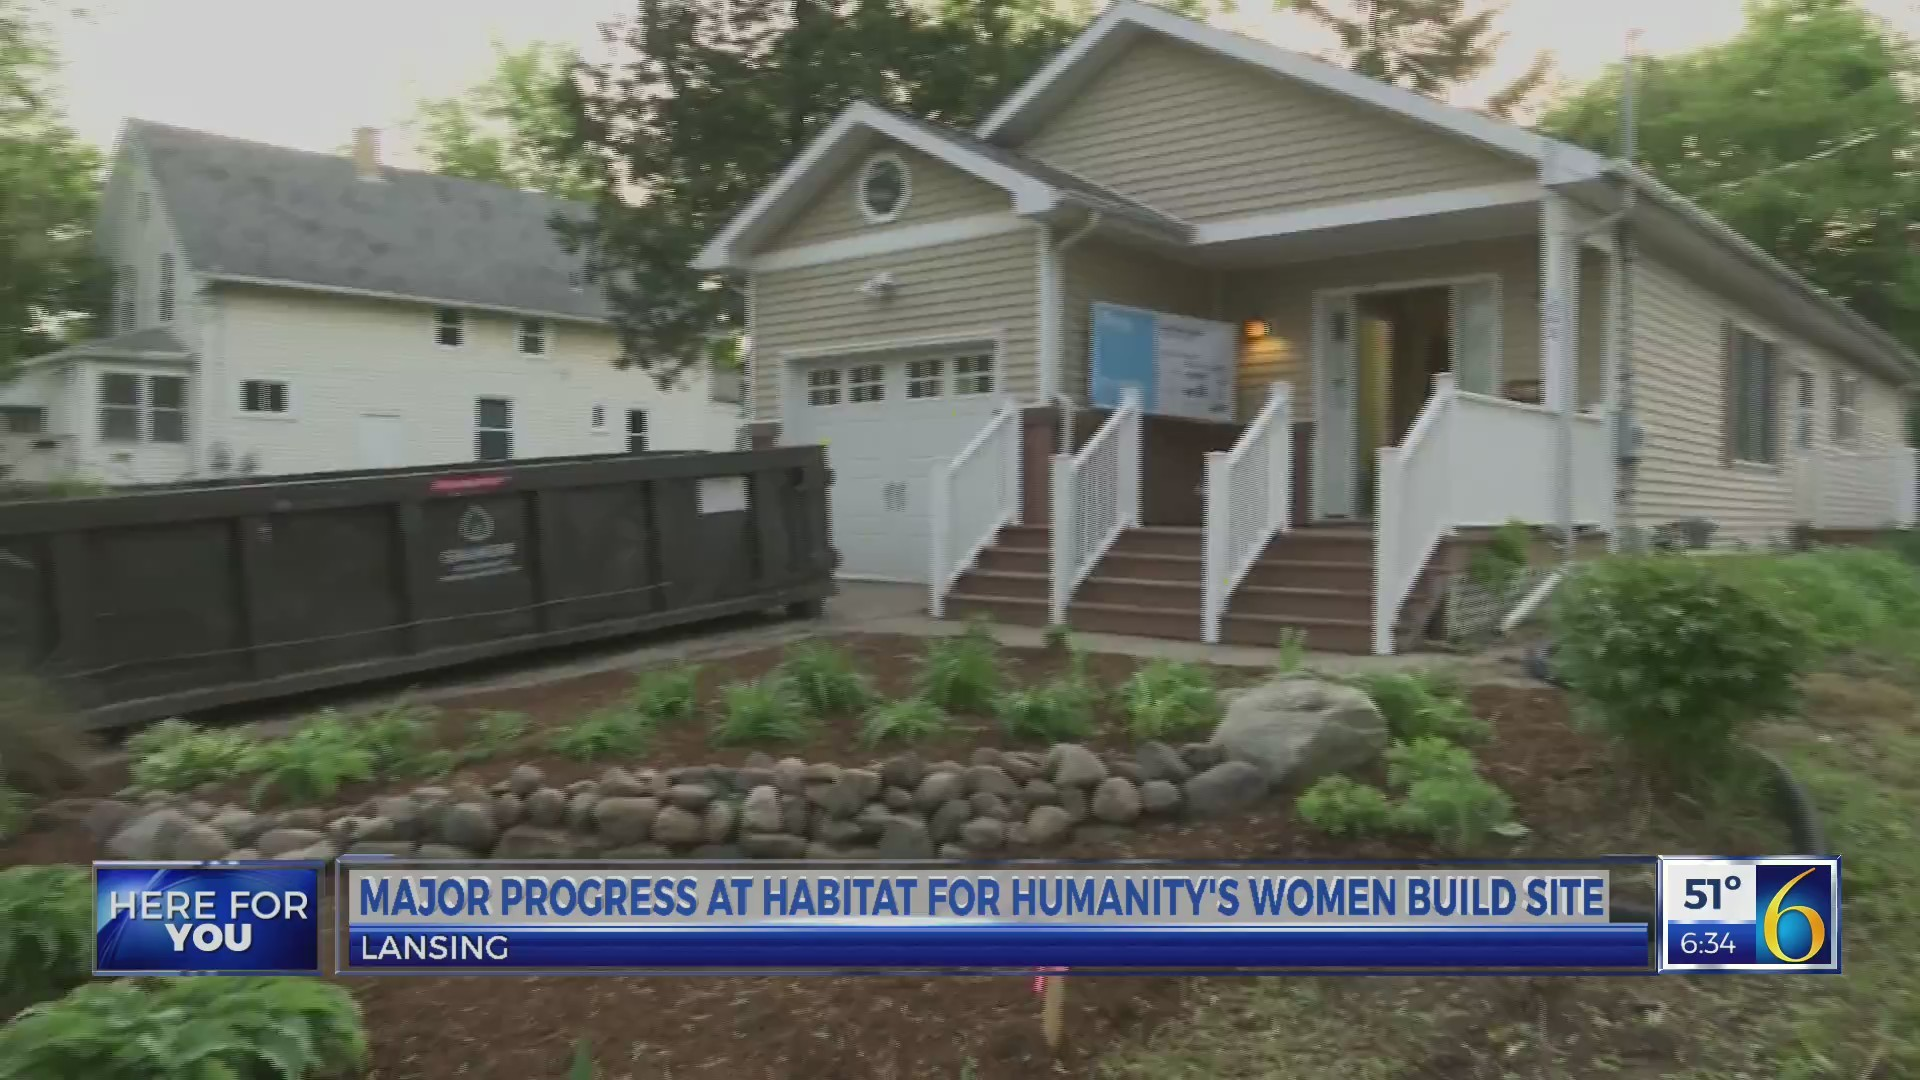 This Morning: Major progress at Habitat for Humanity's women build - live 2